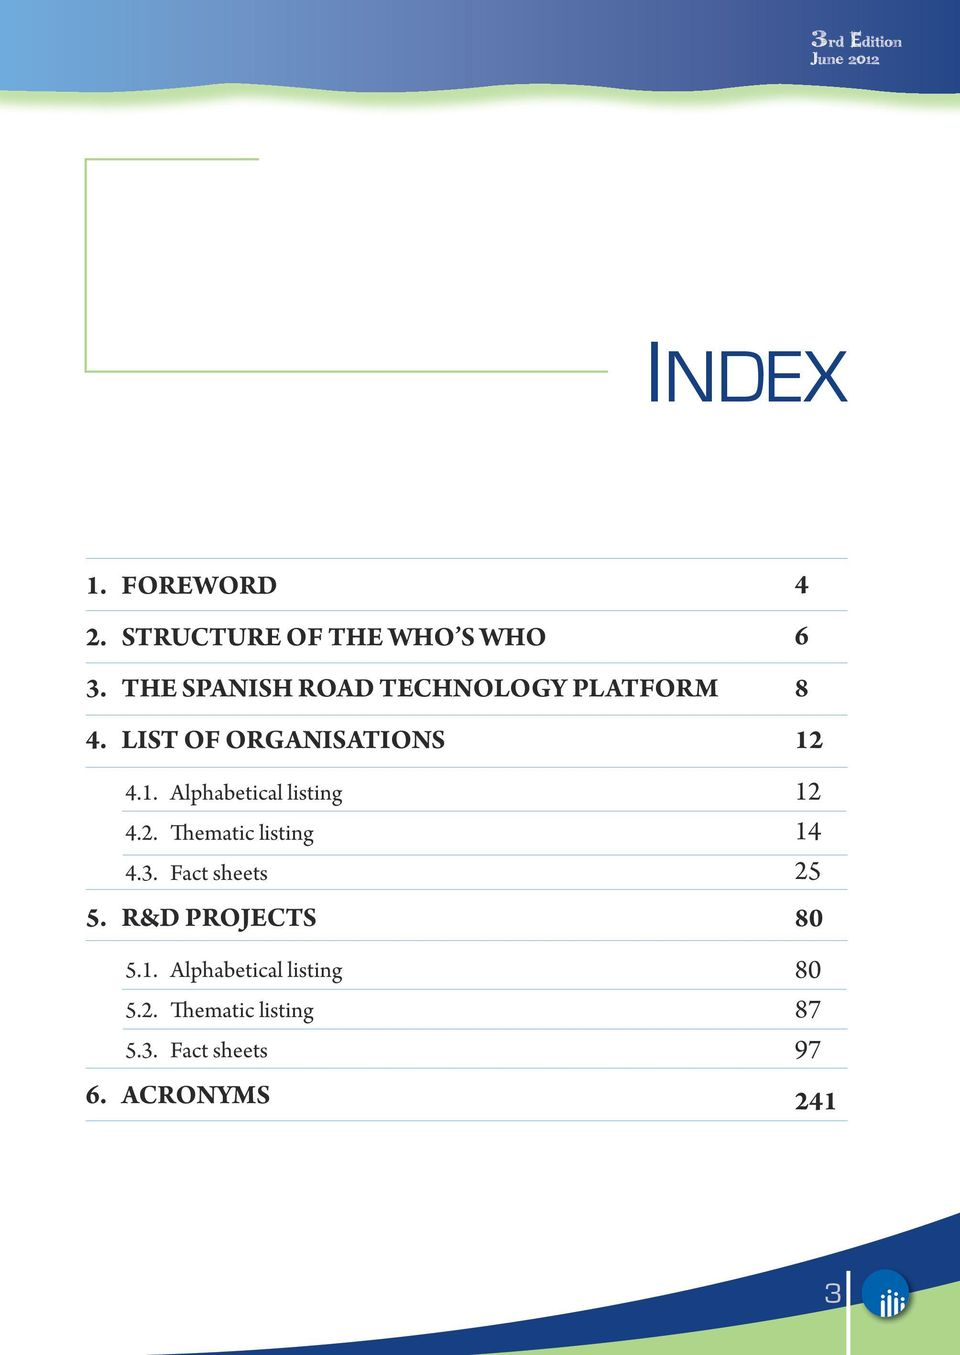 Alphabetical listing 4.2. Thematic listing 4.3. Fact sheets 5. R&D PROJECTS 5.1.